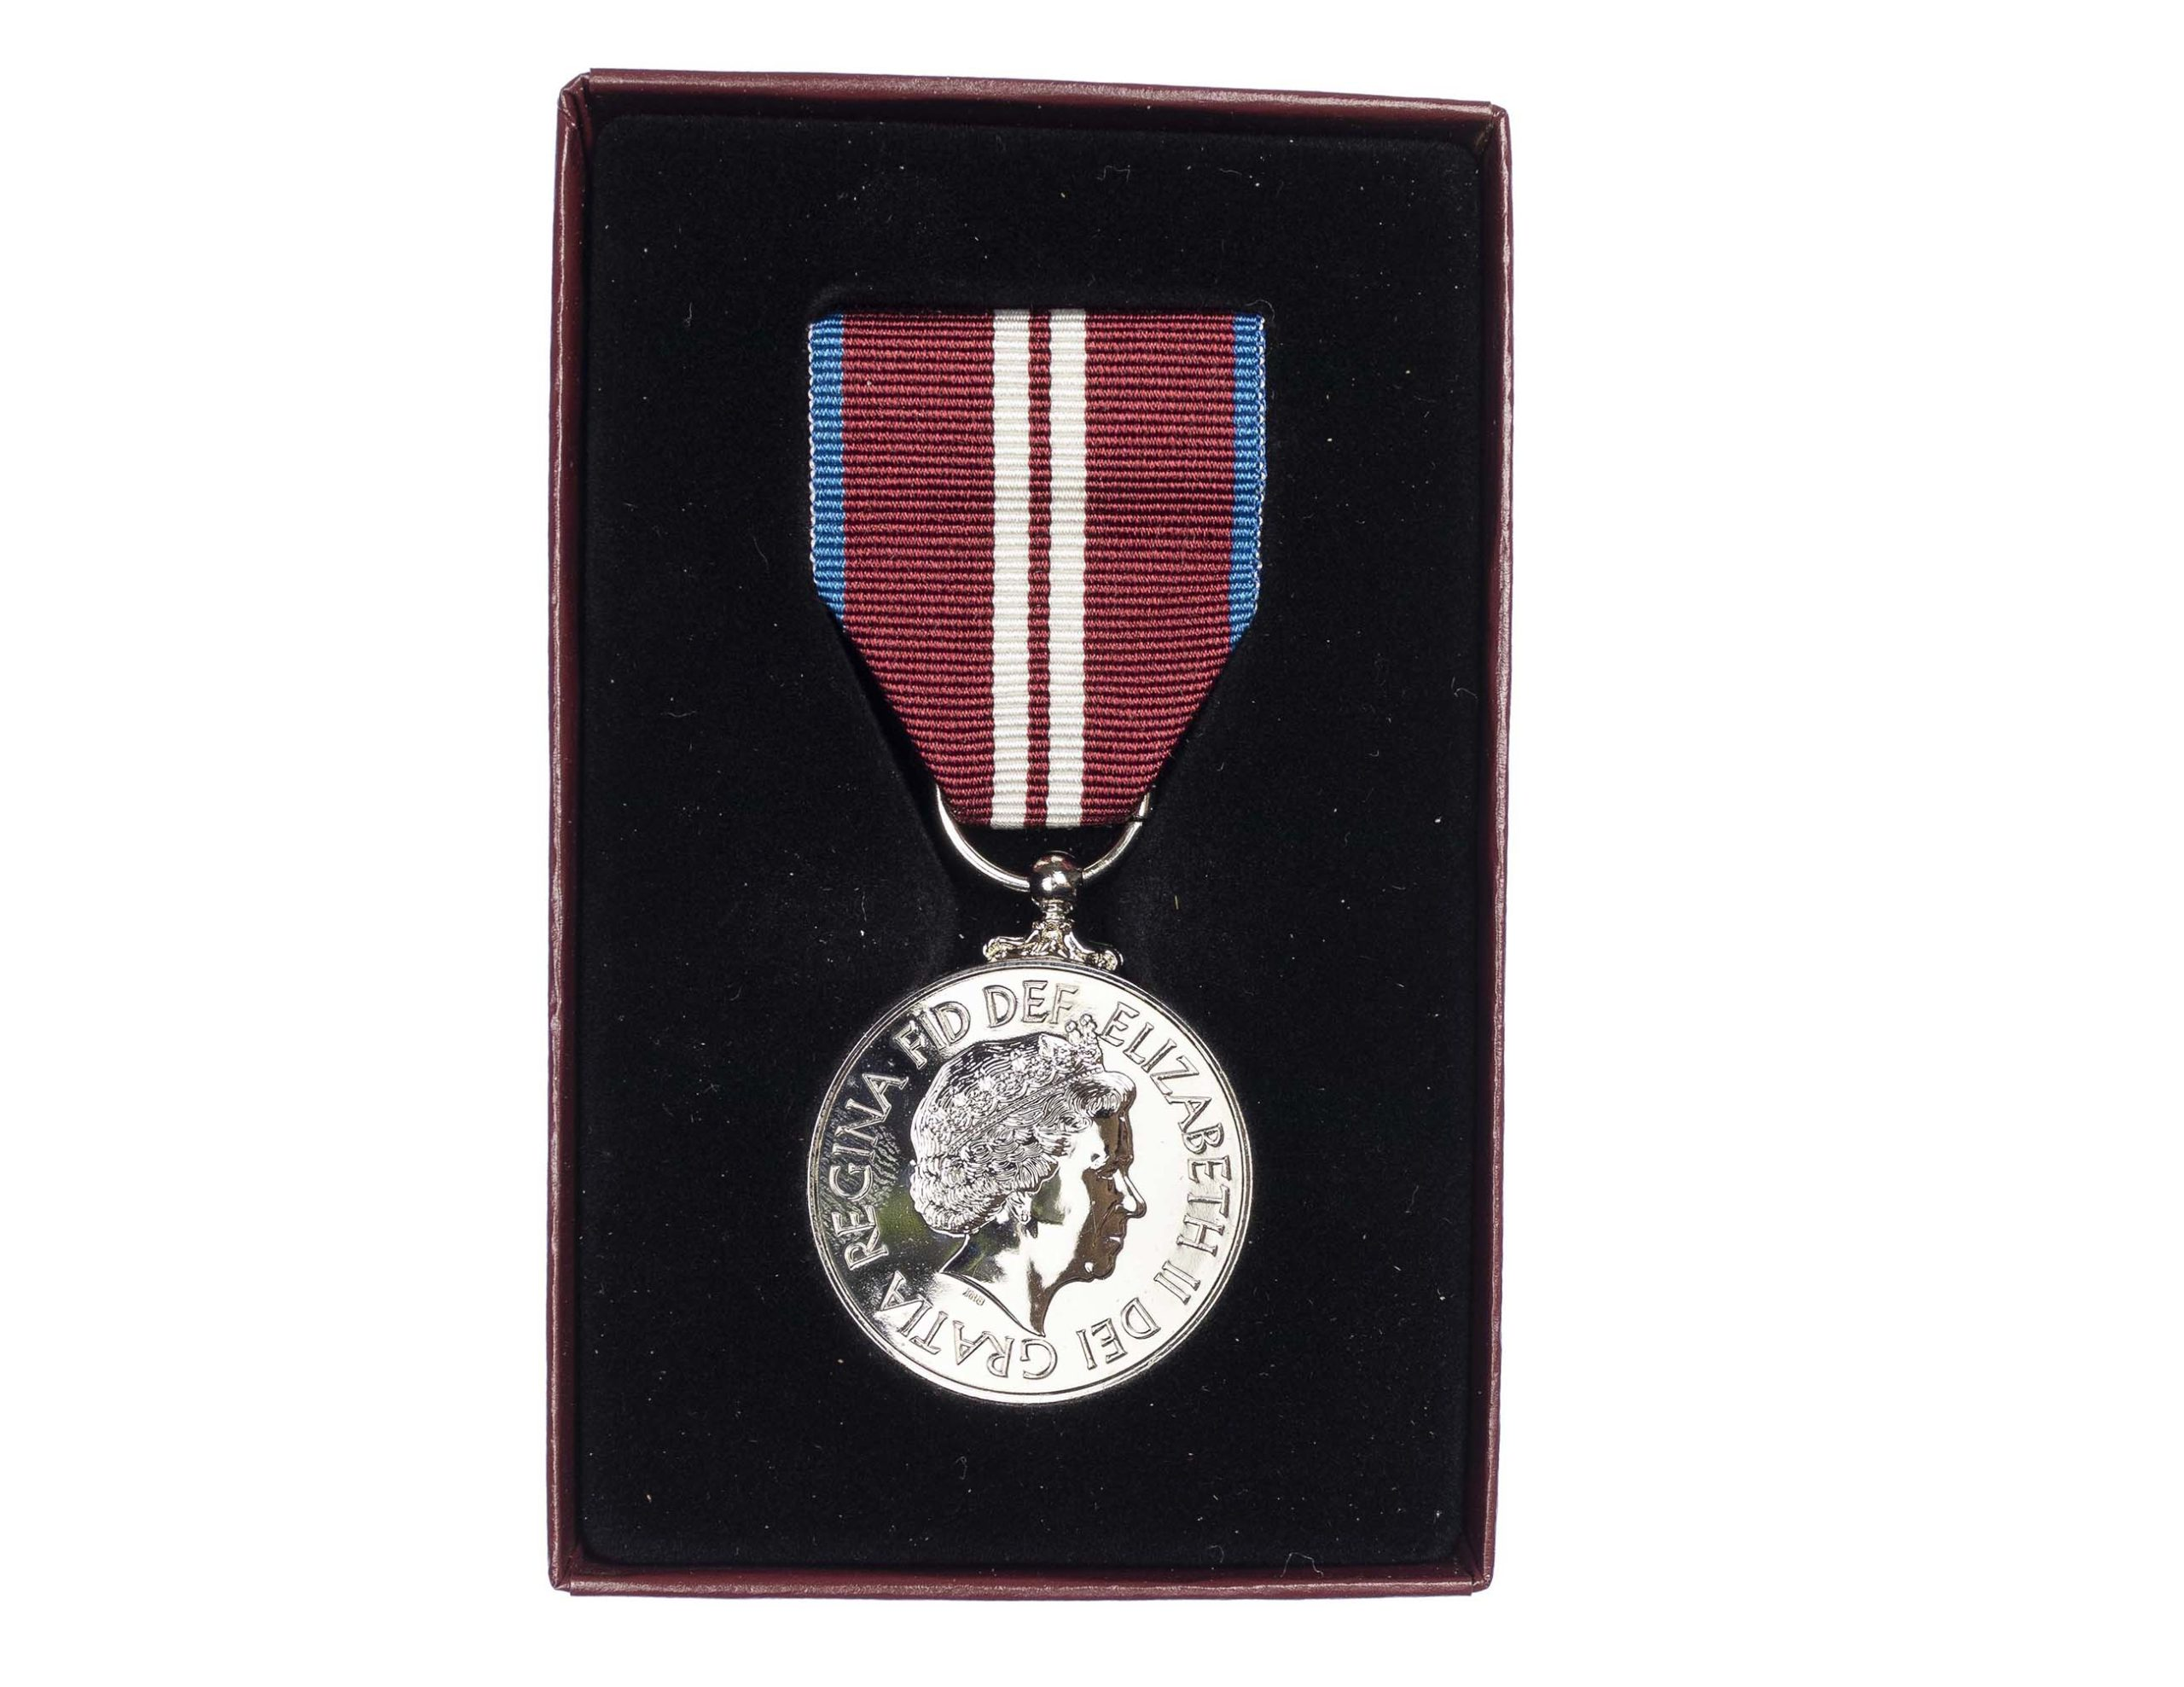 The Queen's Diamond Jubilee Medal 1952-2012